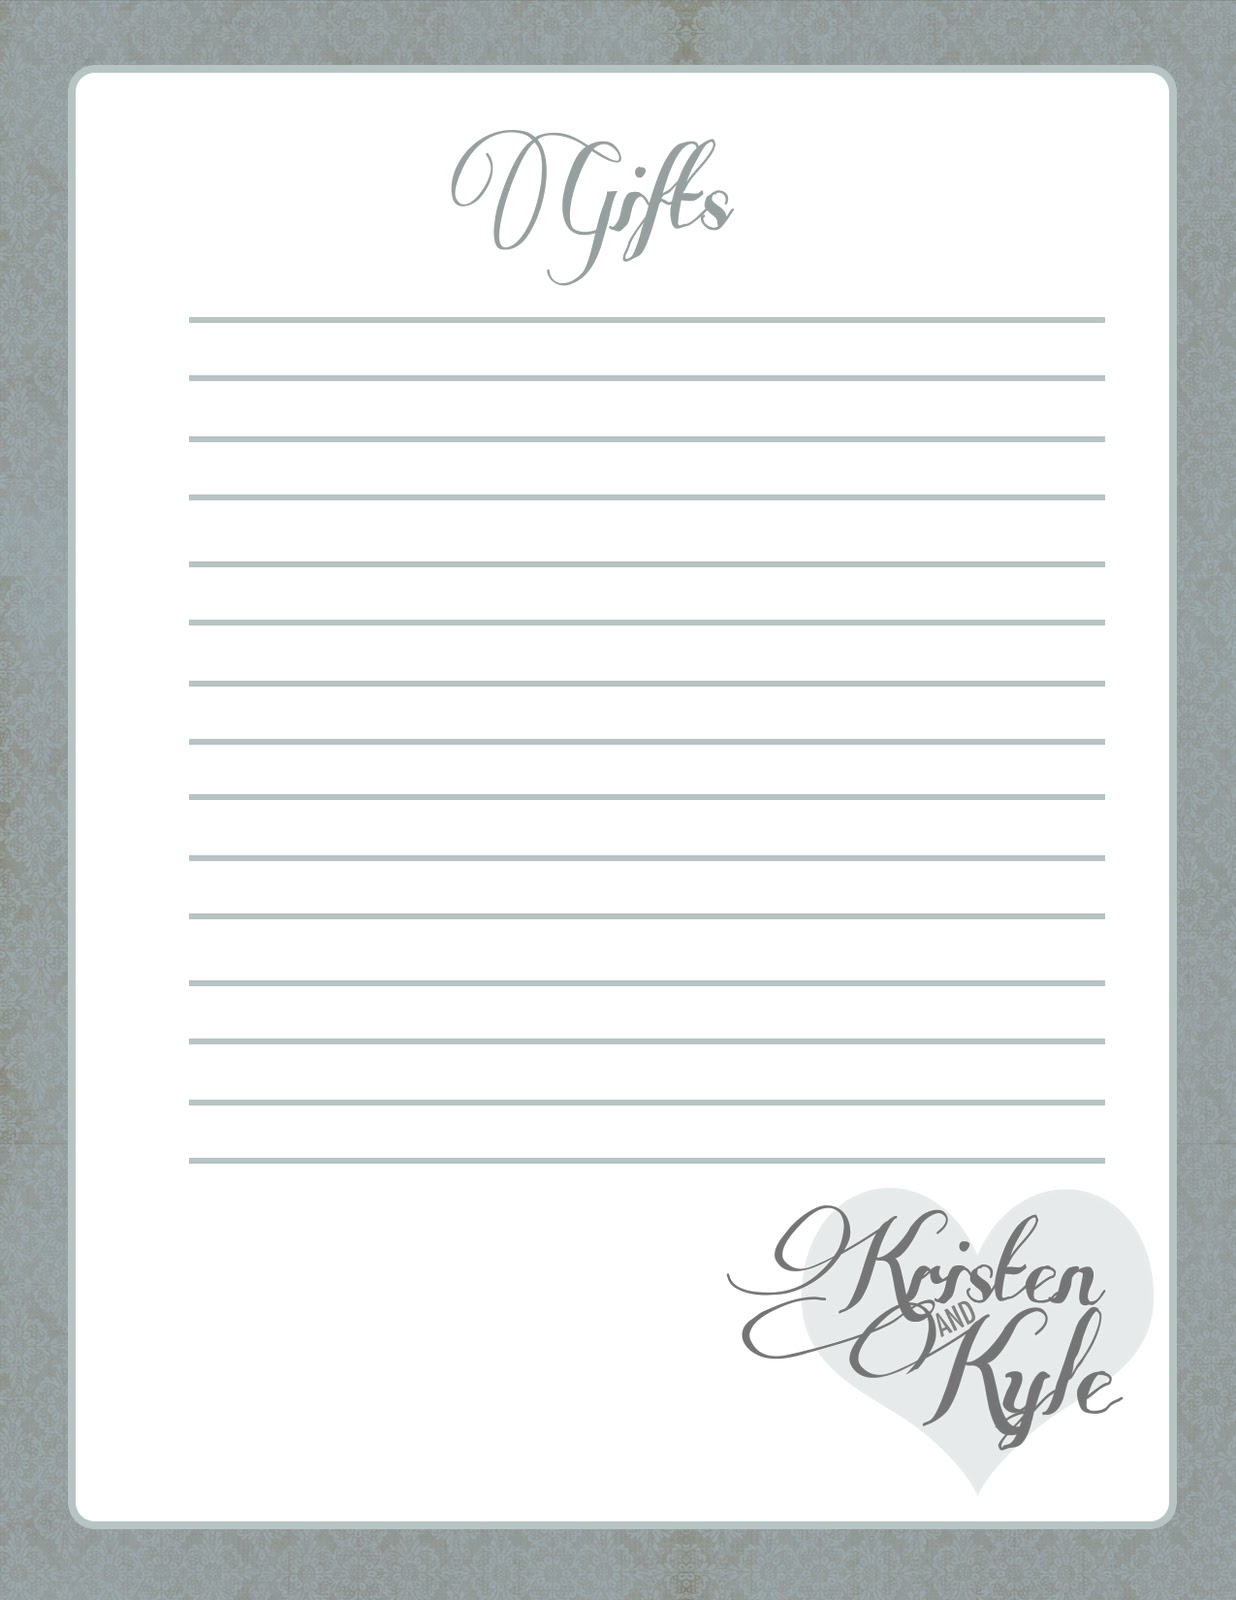 Wedding Gift List Printable : Bridal+Shower+Gift+List+Template Baby Shower Gift List Event...